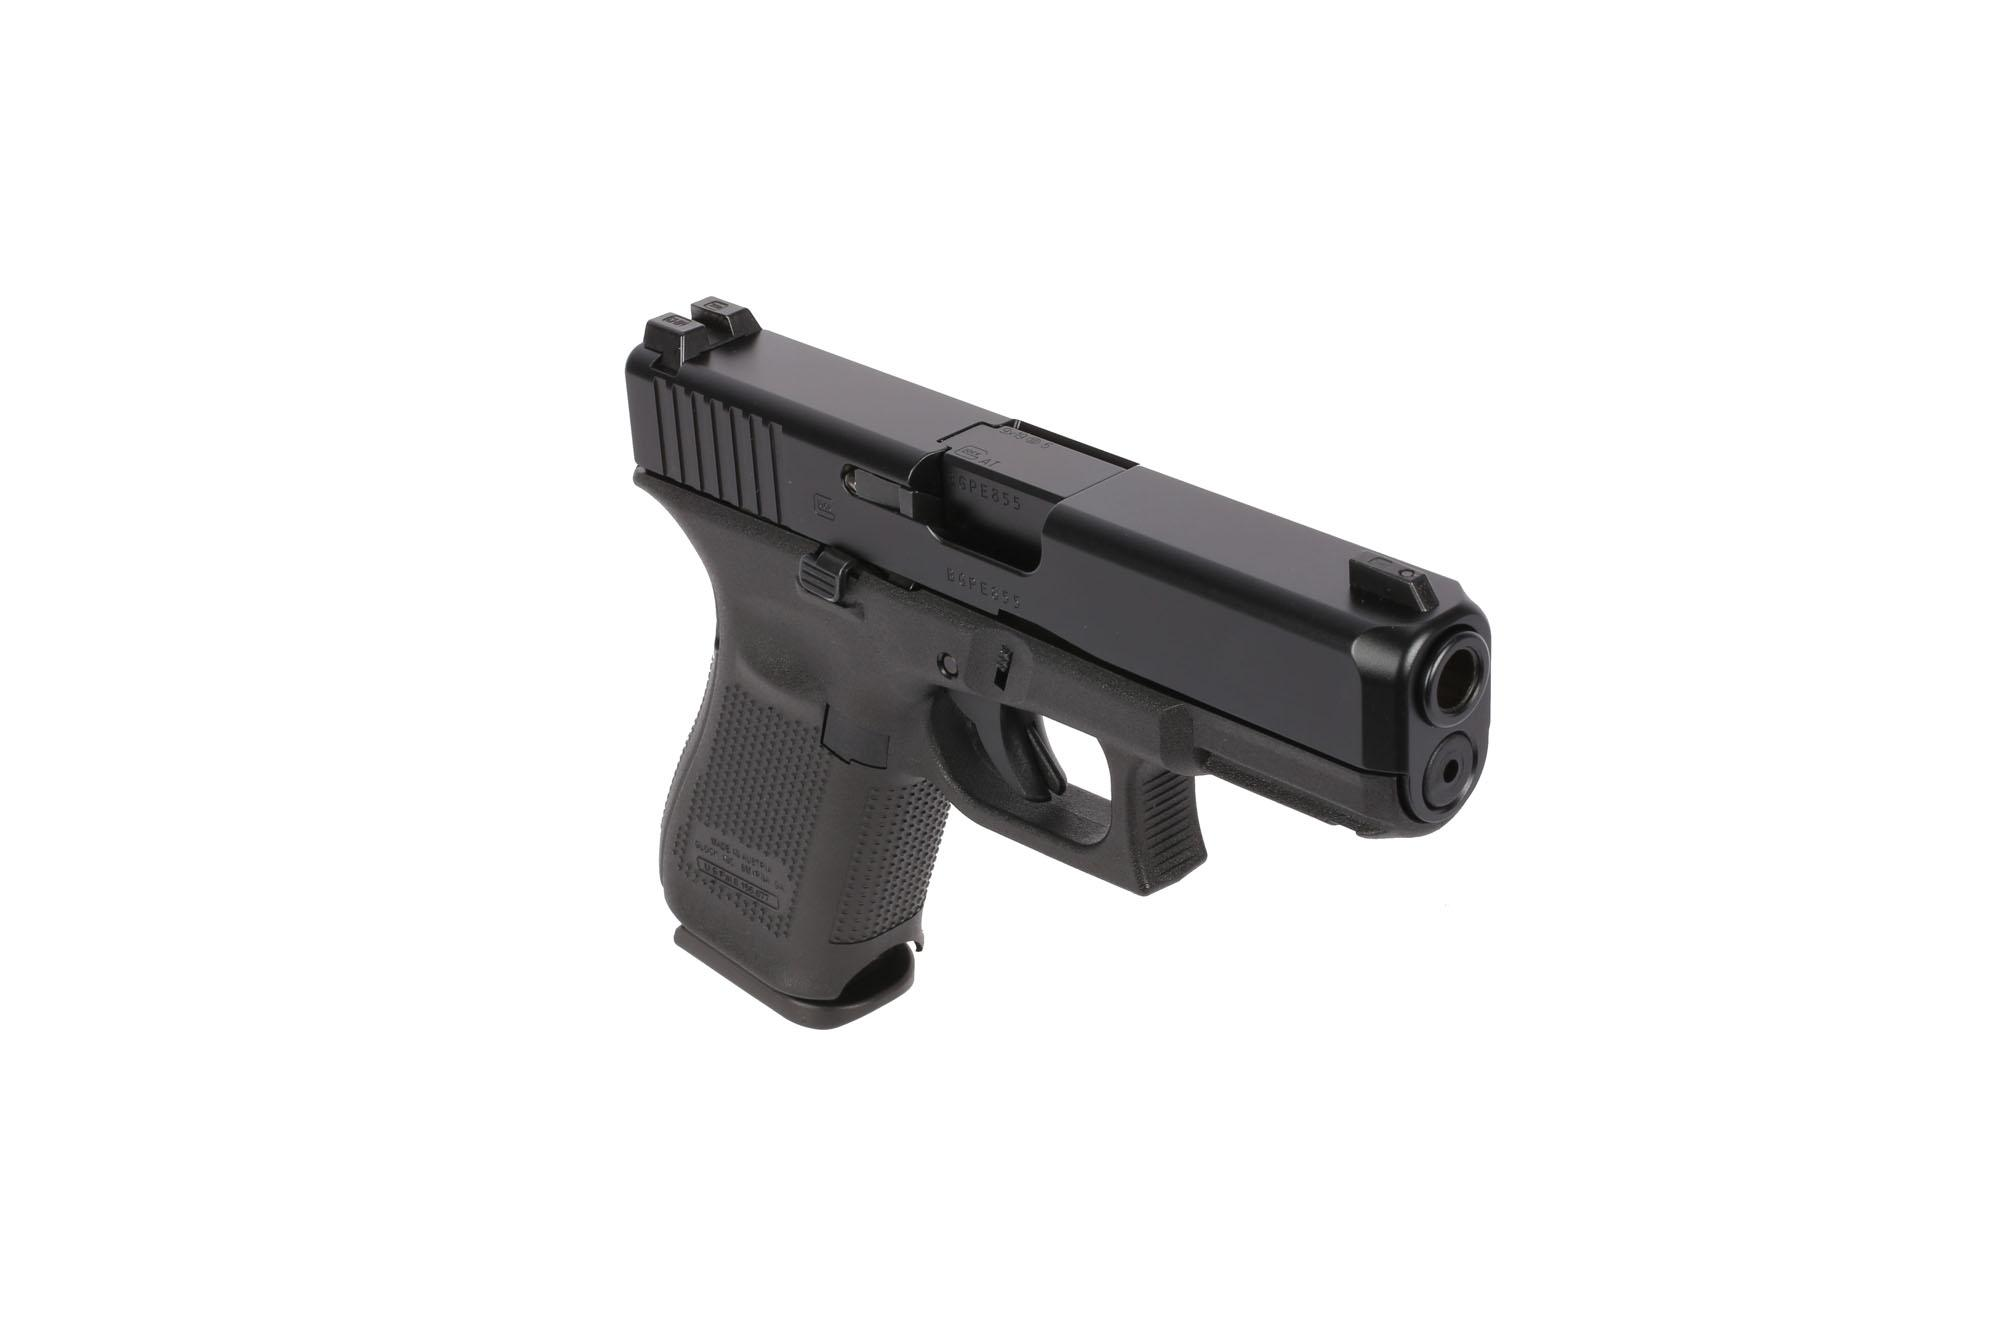 GLOCK 19 Gen5 9mm Compact Pistol - Night Sights